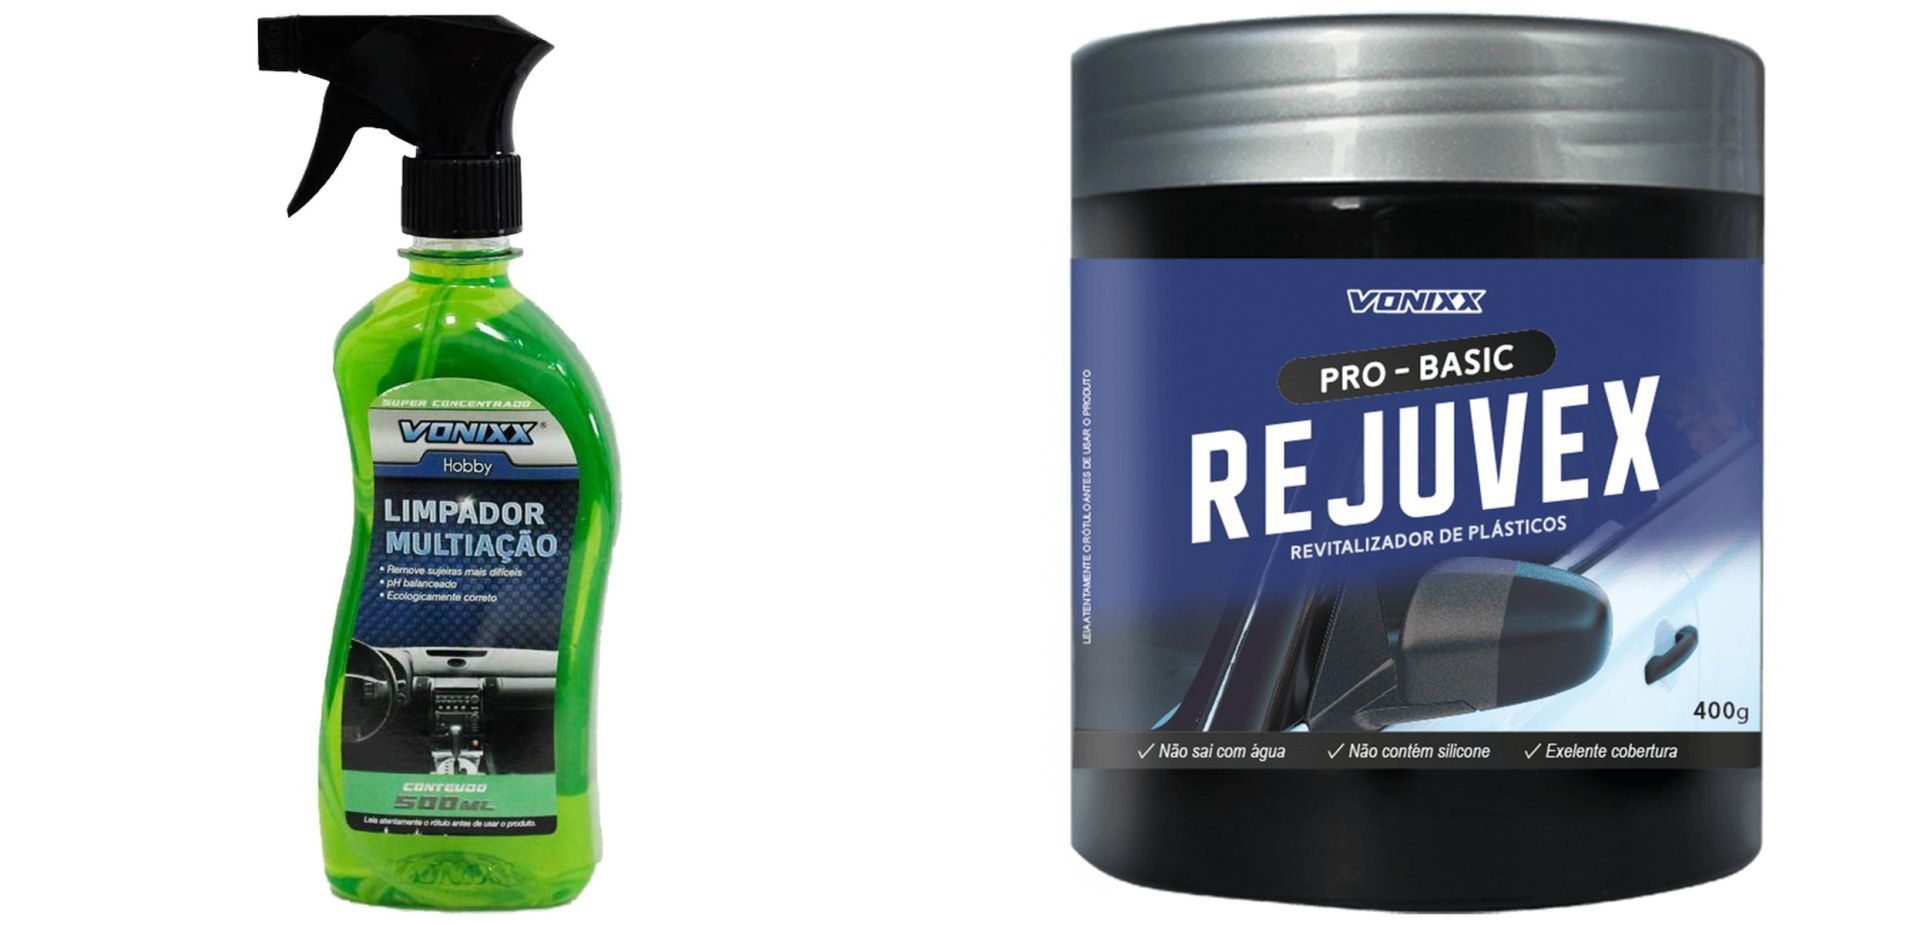 Kit Rejuvex 400g + Limpador Multiacao Apc 500ml